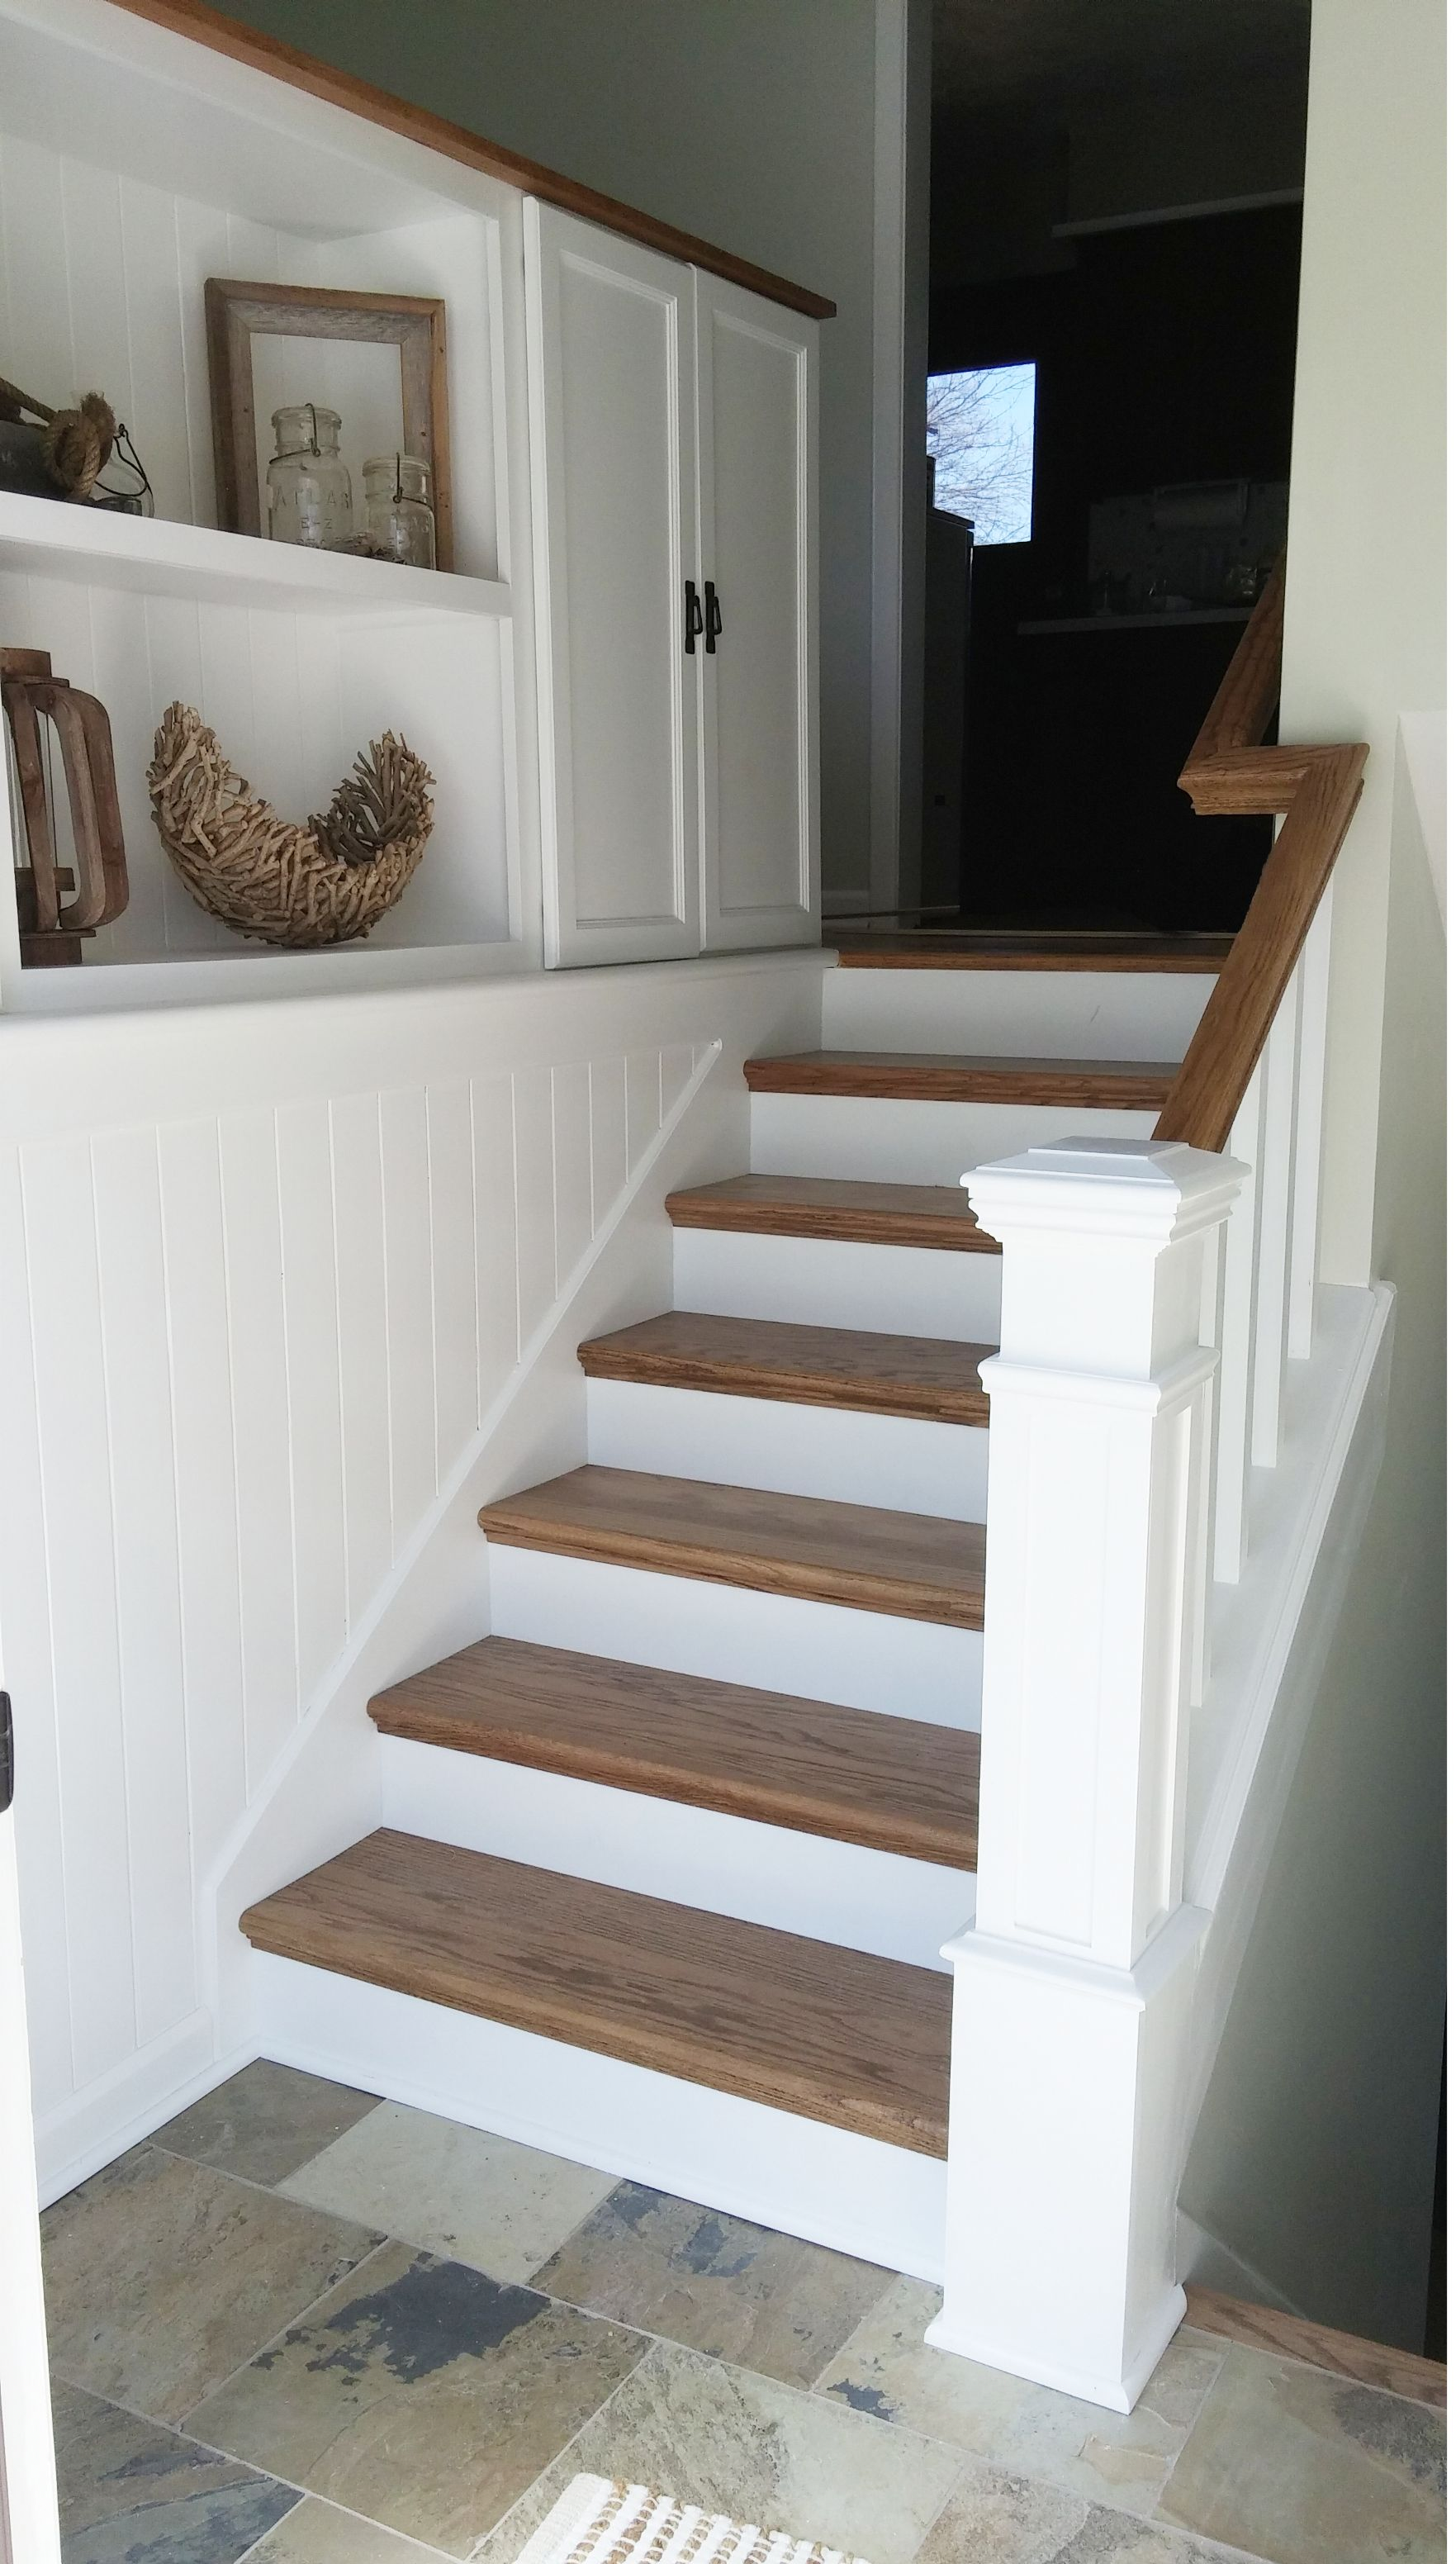 Split Foyer Entry Remodel : Diy split entry remodel added storage planking to tie